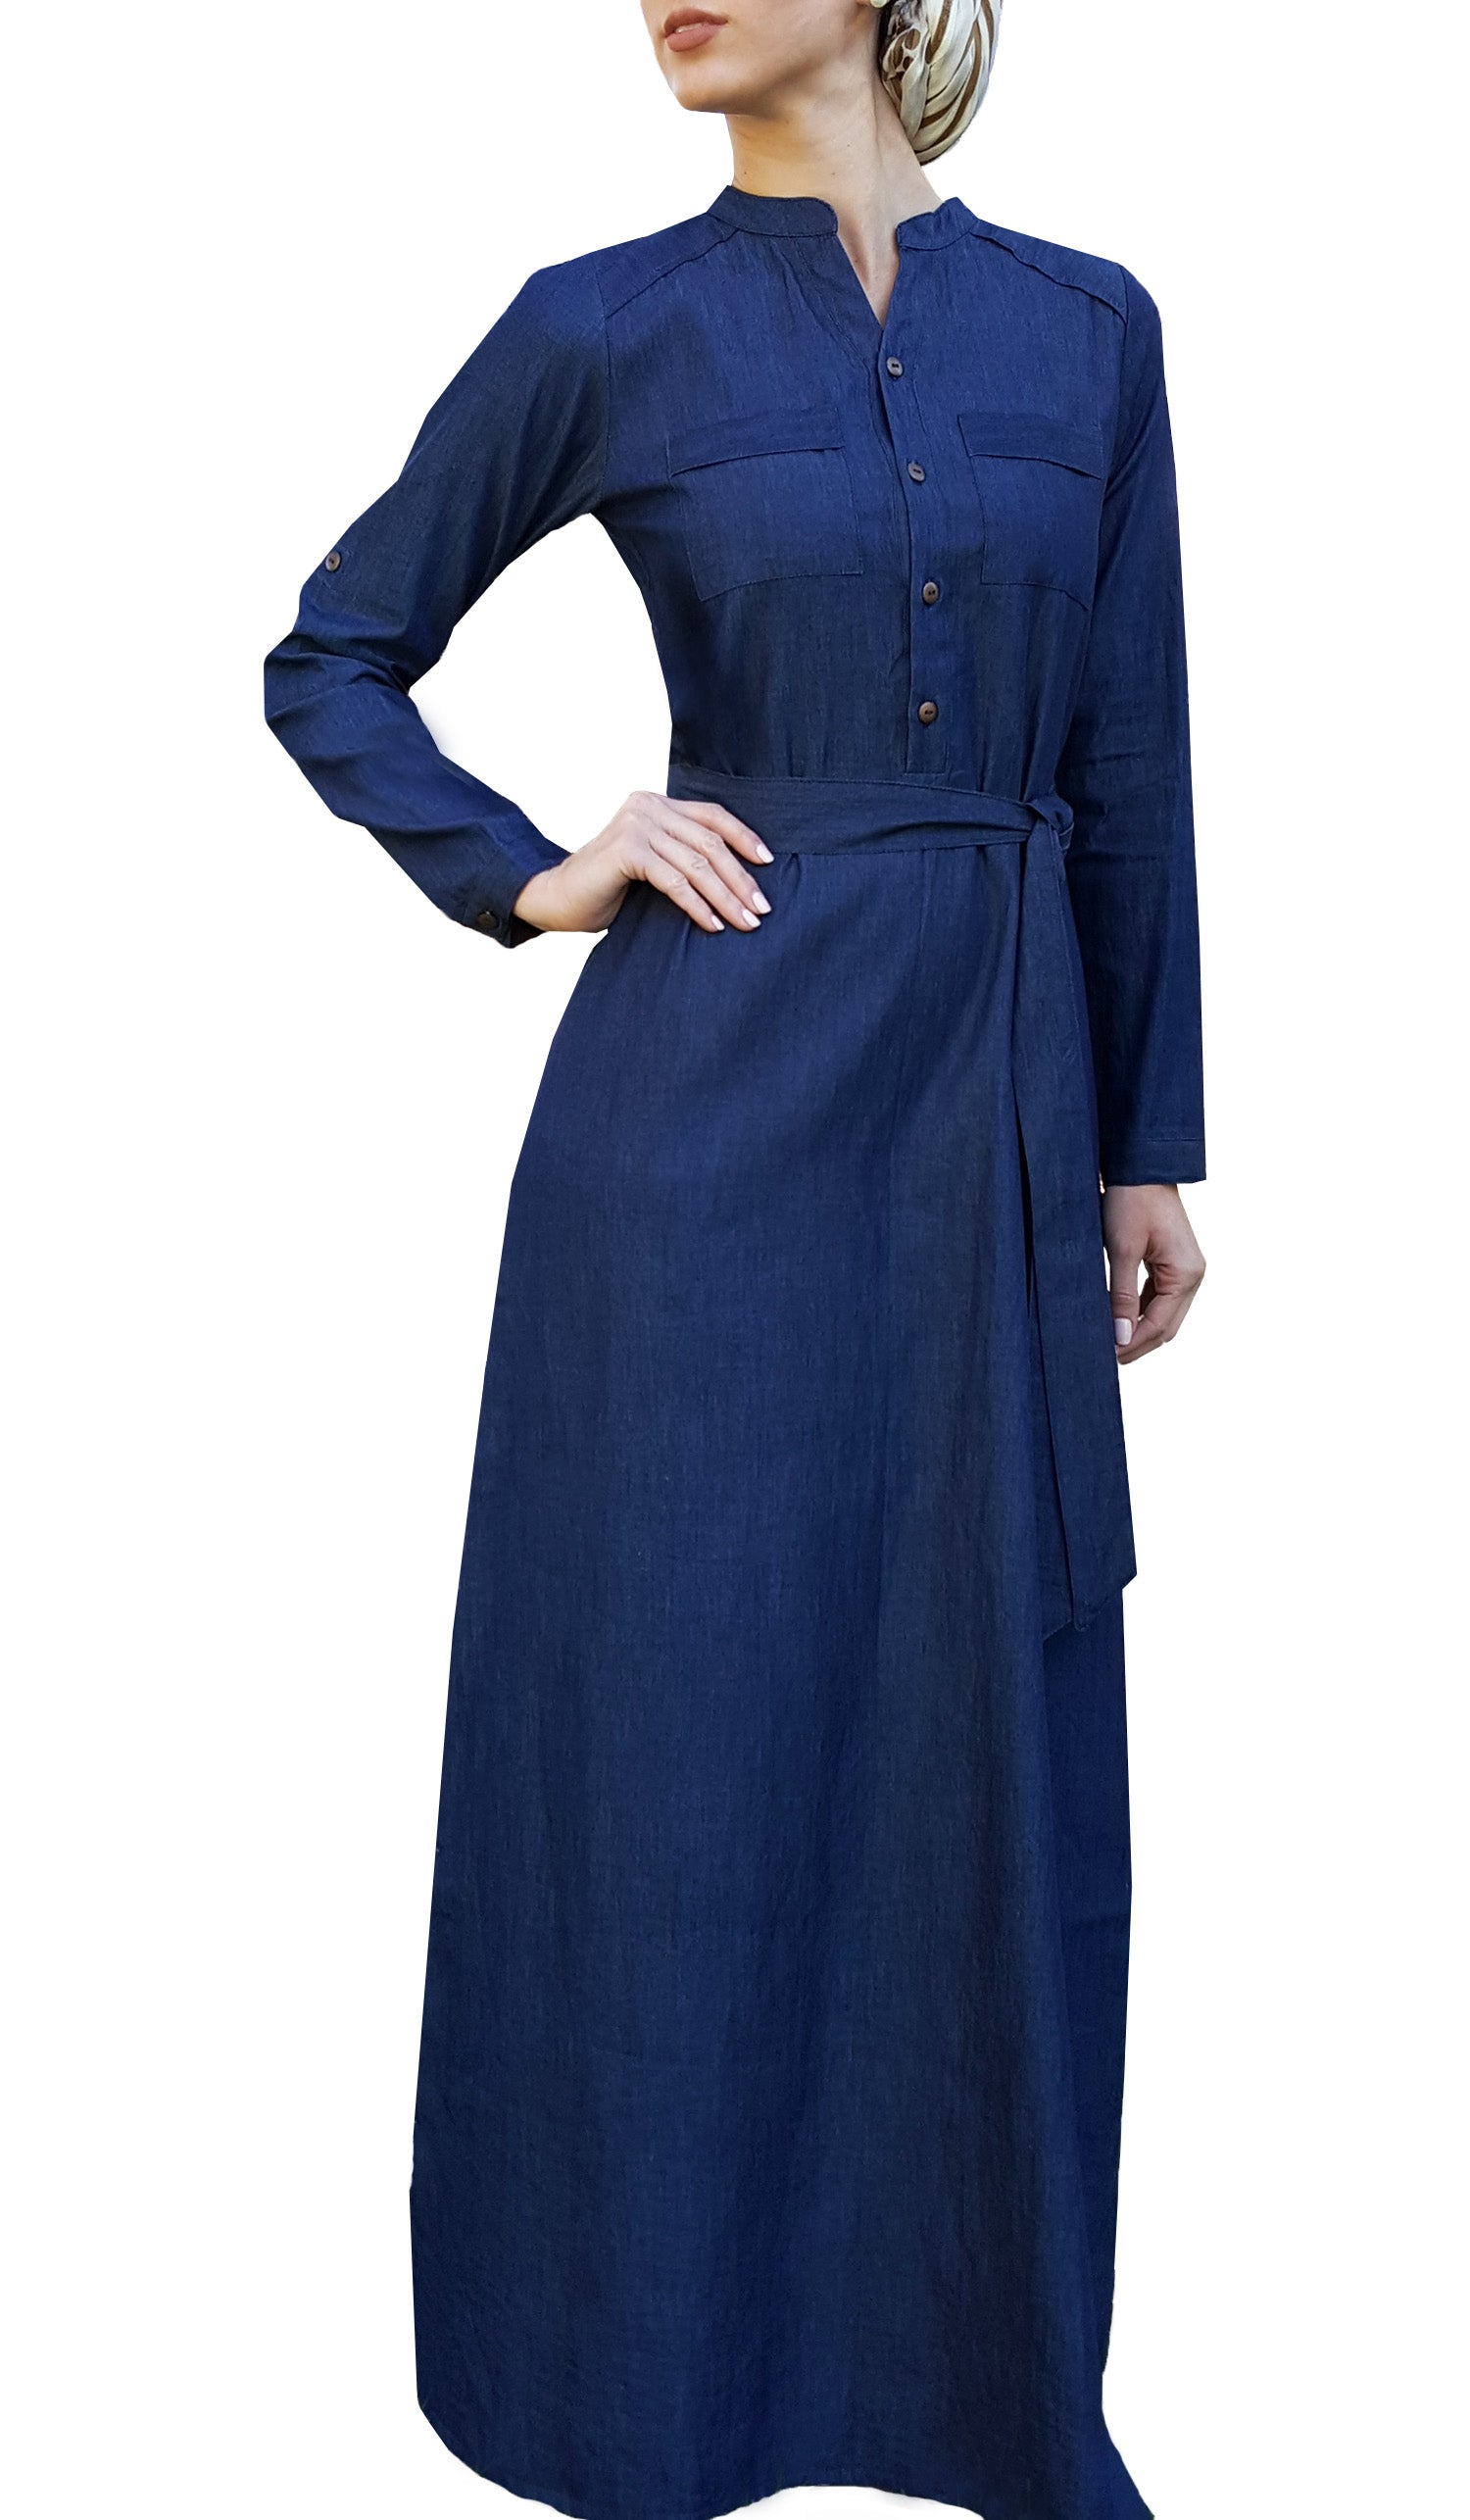 01c6616e182 Stylish Denim Islamic Maxi Dress Abaya | Muslim Dresses | Artizara.com –  ARTIZARA.COM